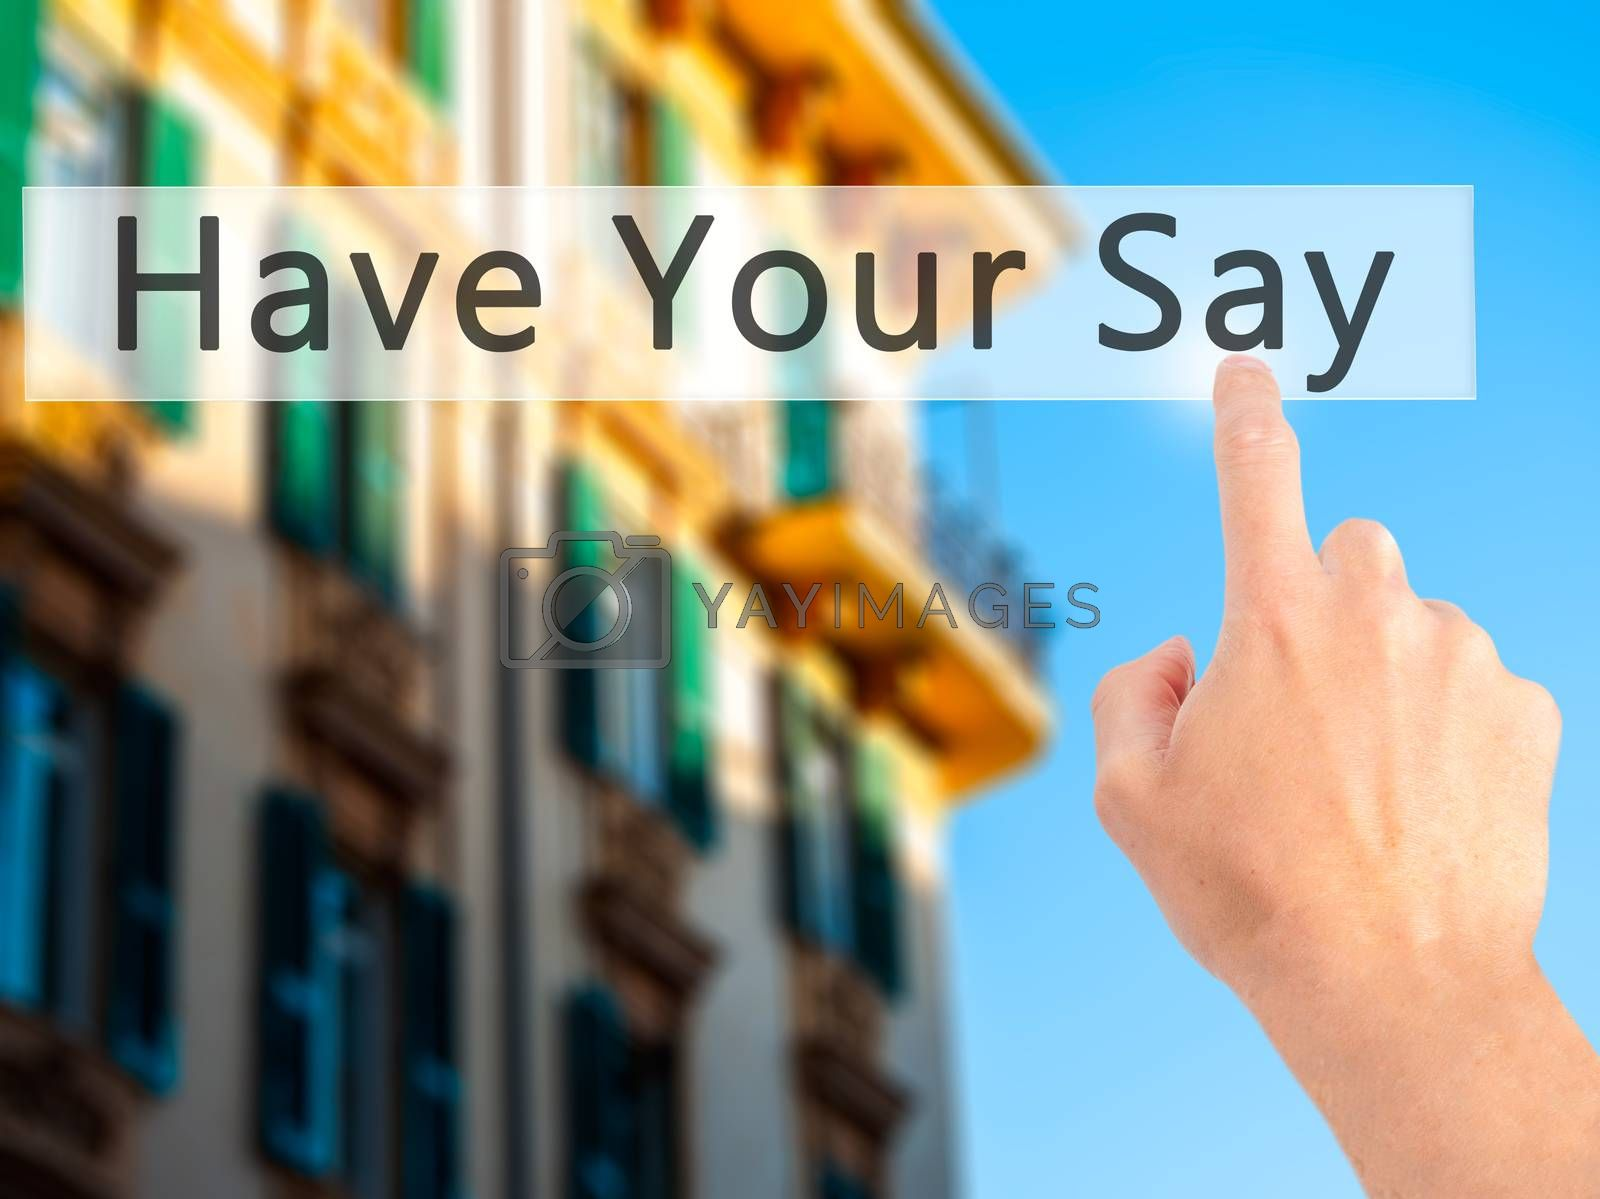 Have Your Say - Hand pressing a button on blurred background con by netsay.net